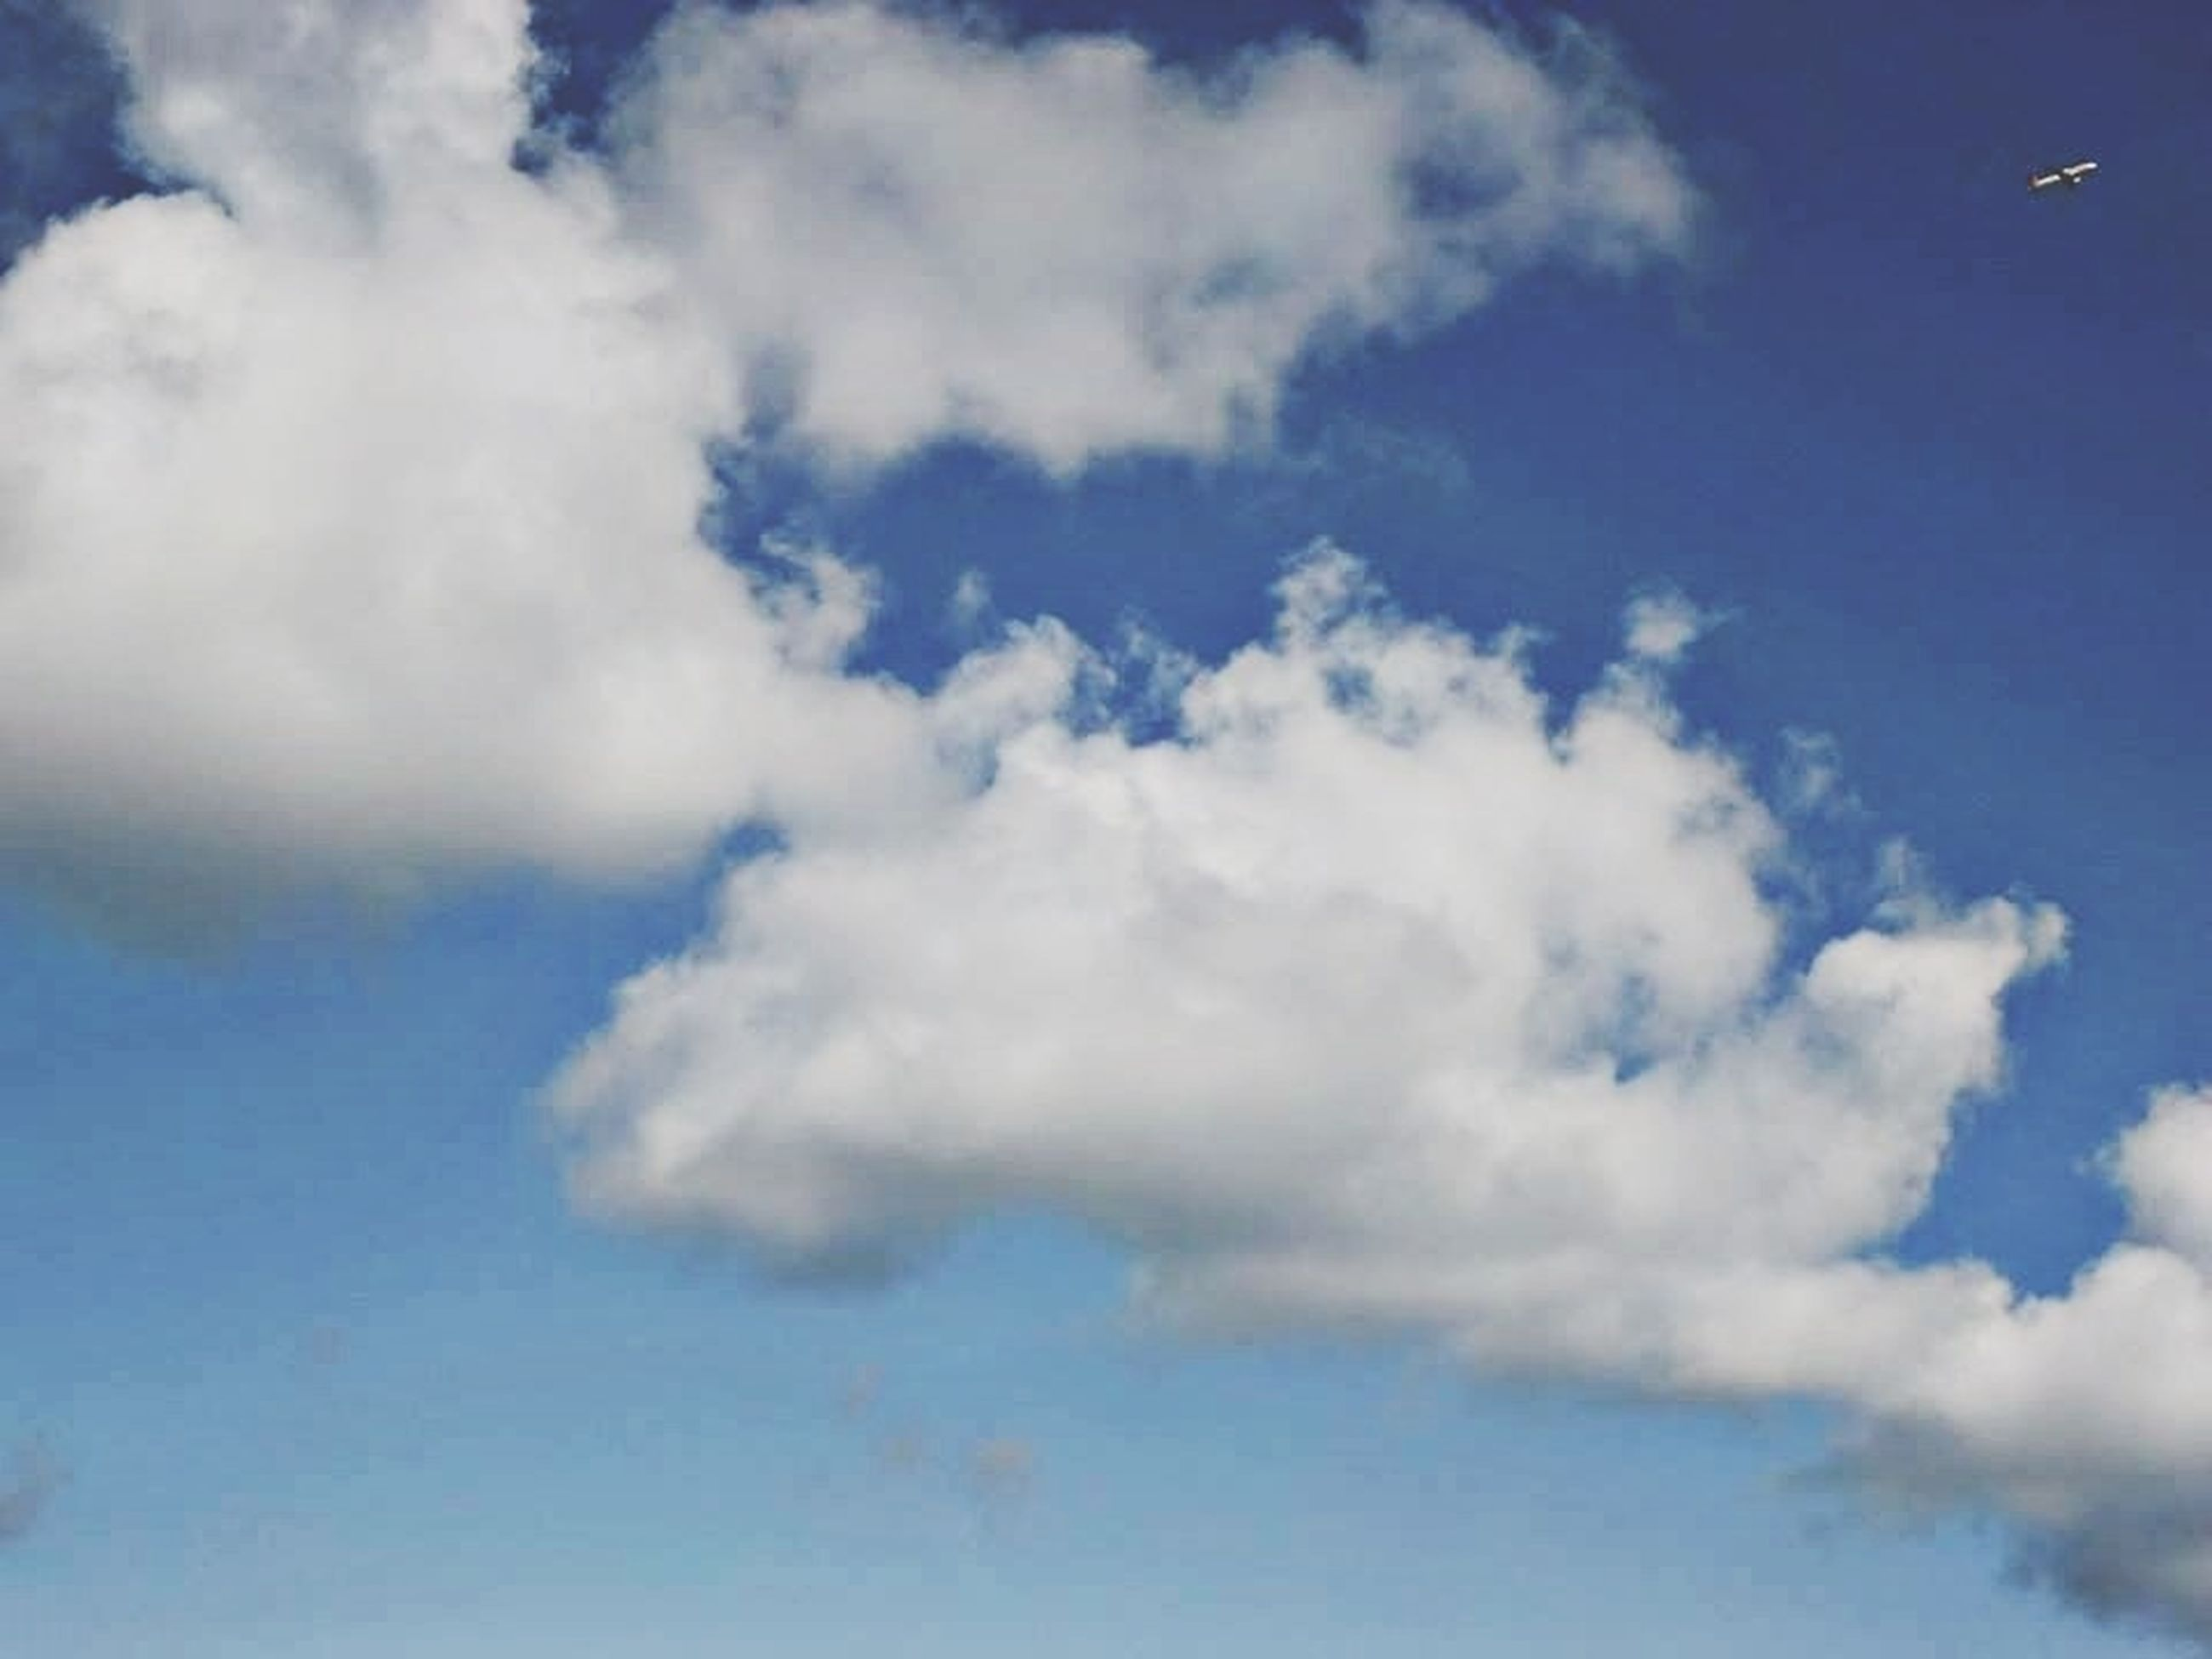 sky, blue, low angle view, sky only, cloud - sky, beauty in nature, tranquility, scenics, nature, white color, tranquil scene, cloudscape, cloud, cloudy, backgrounds, idyllic, day, outdoors, white, fluffy